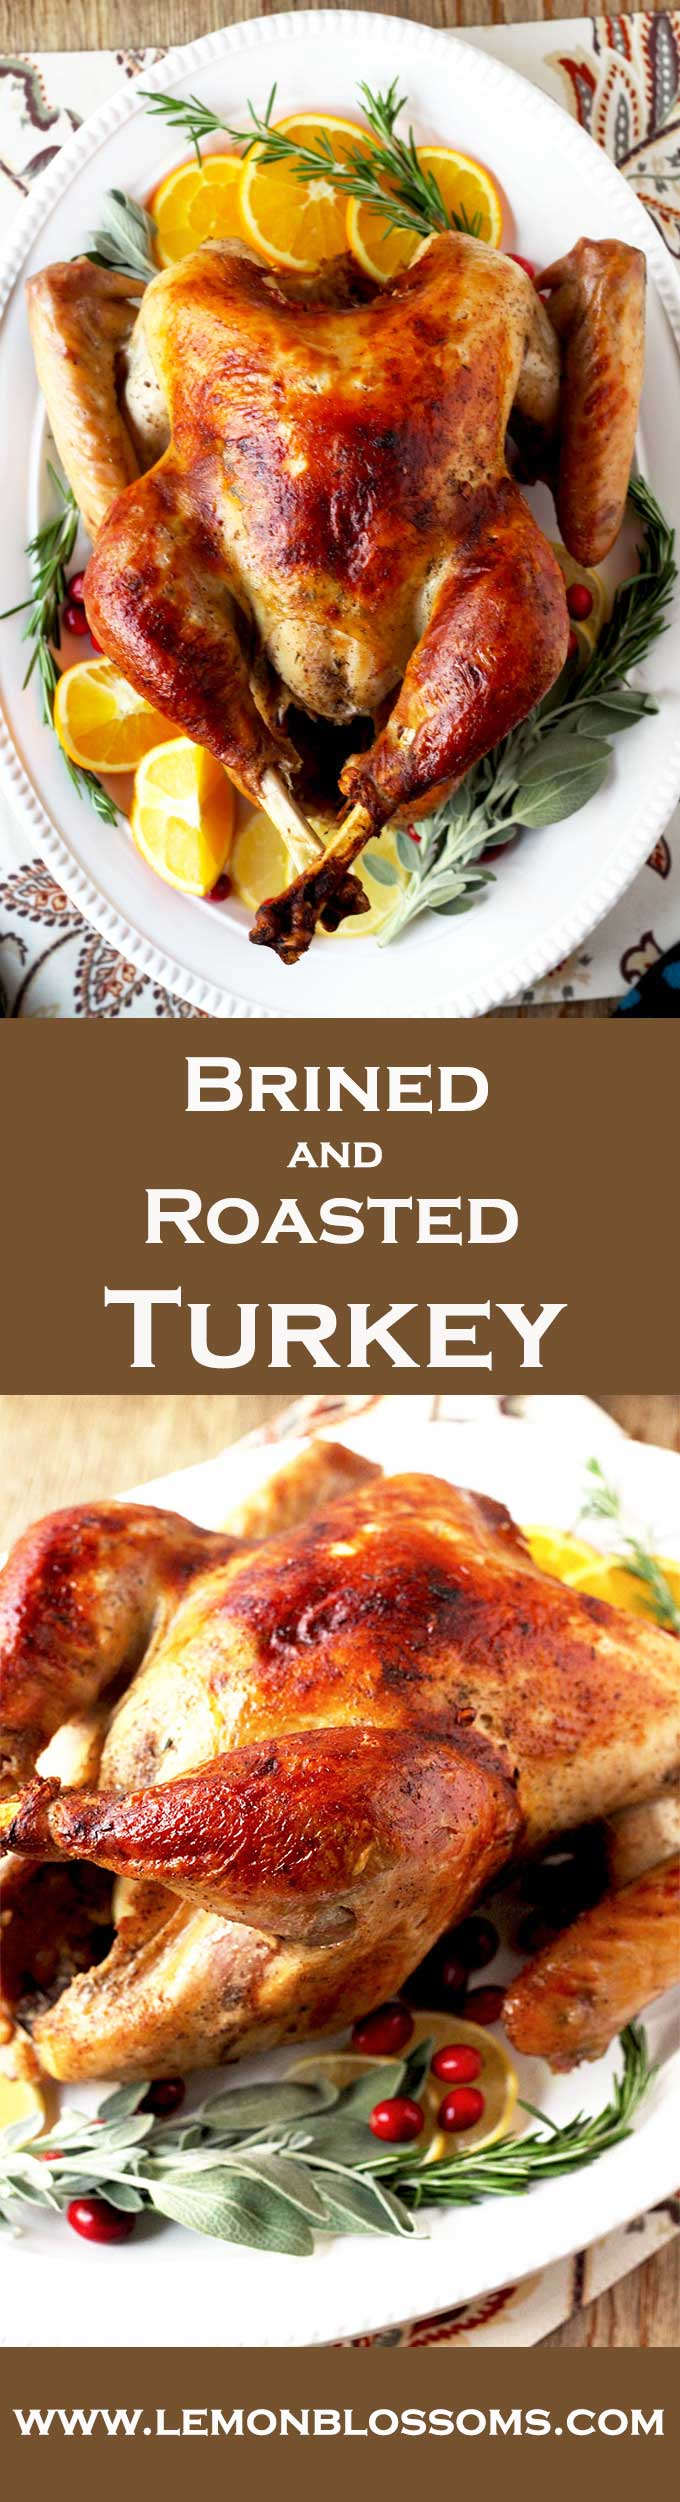 Incredibly moist, delicious, golden and perfectly roasted turkey. The secret is in the brine!!